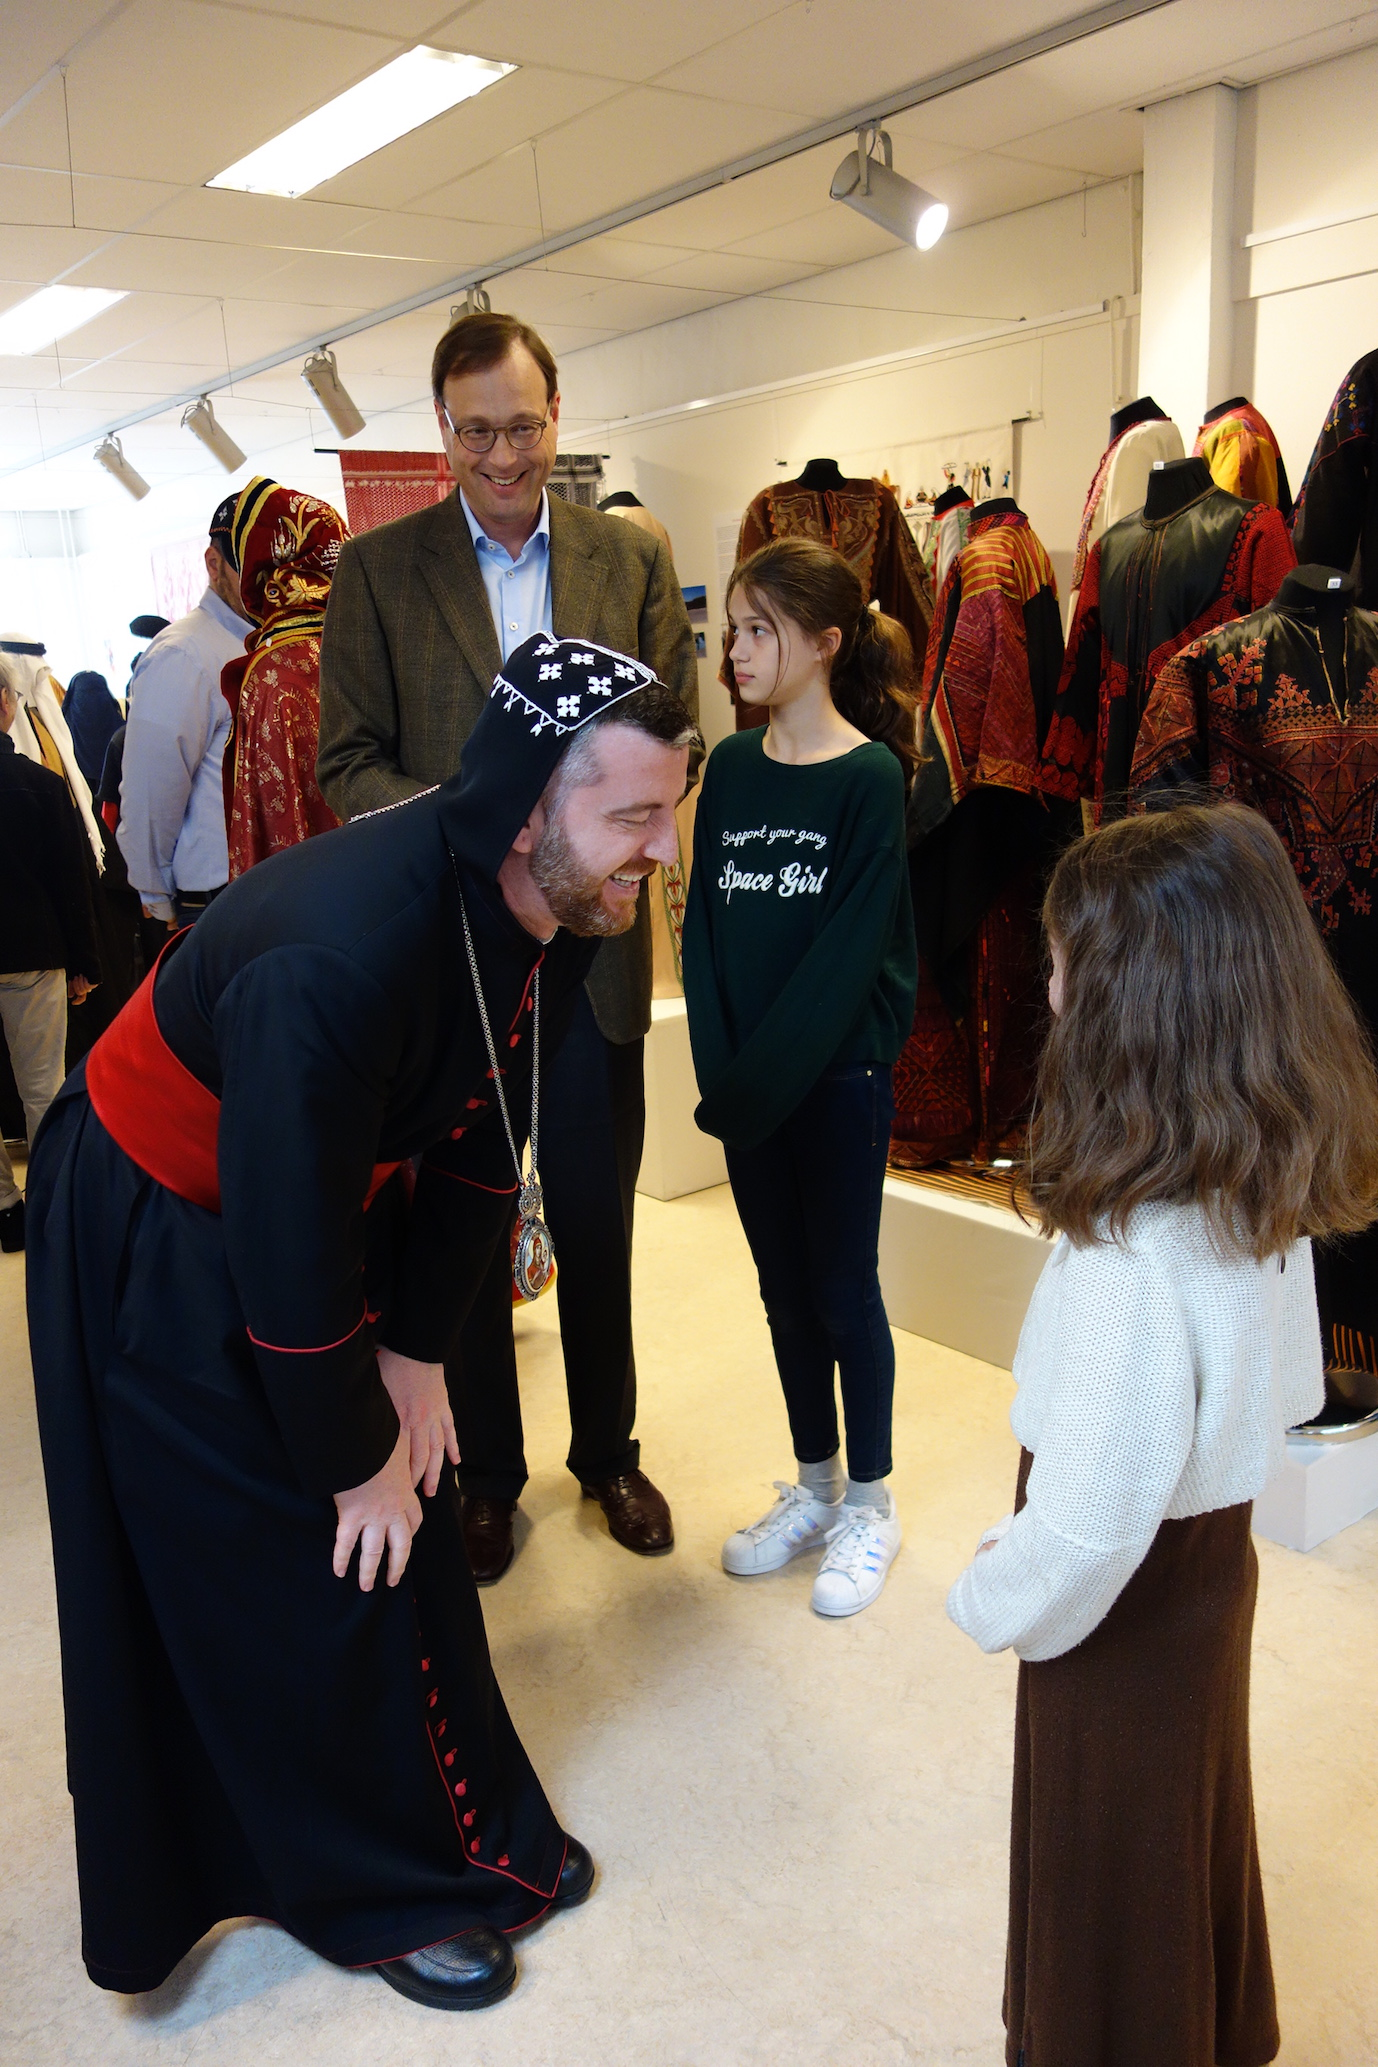 His Excellency Mor Polycarpus Augin Aydin (Metropolitan of the Syriac Orthodox Church in The Netherlands), talking with one of the young guests.